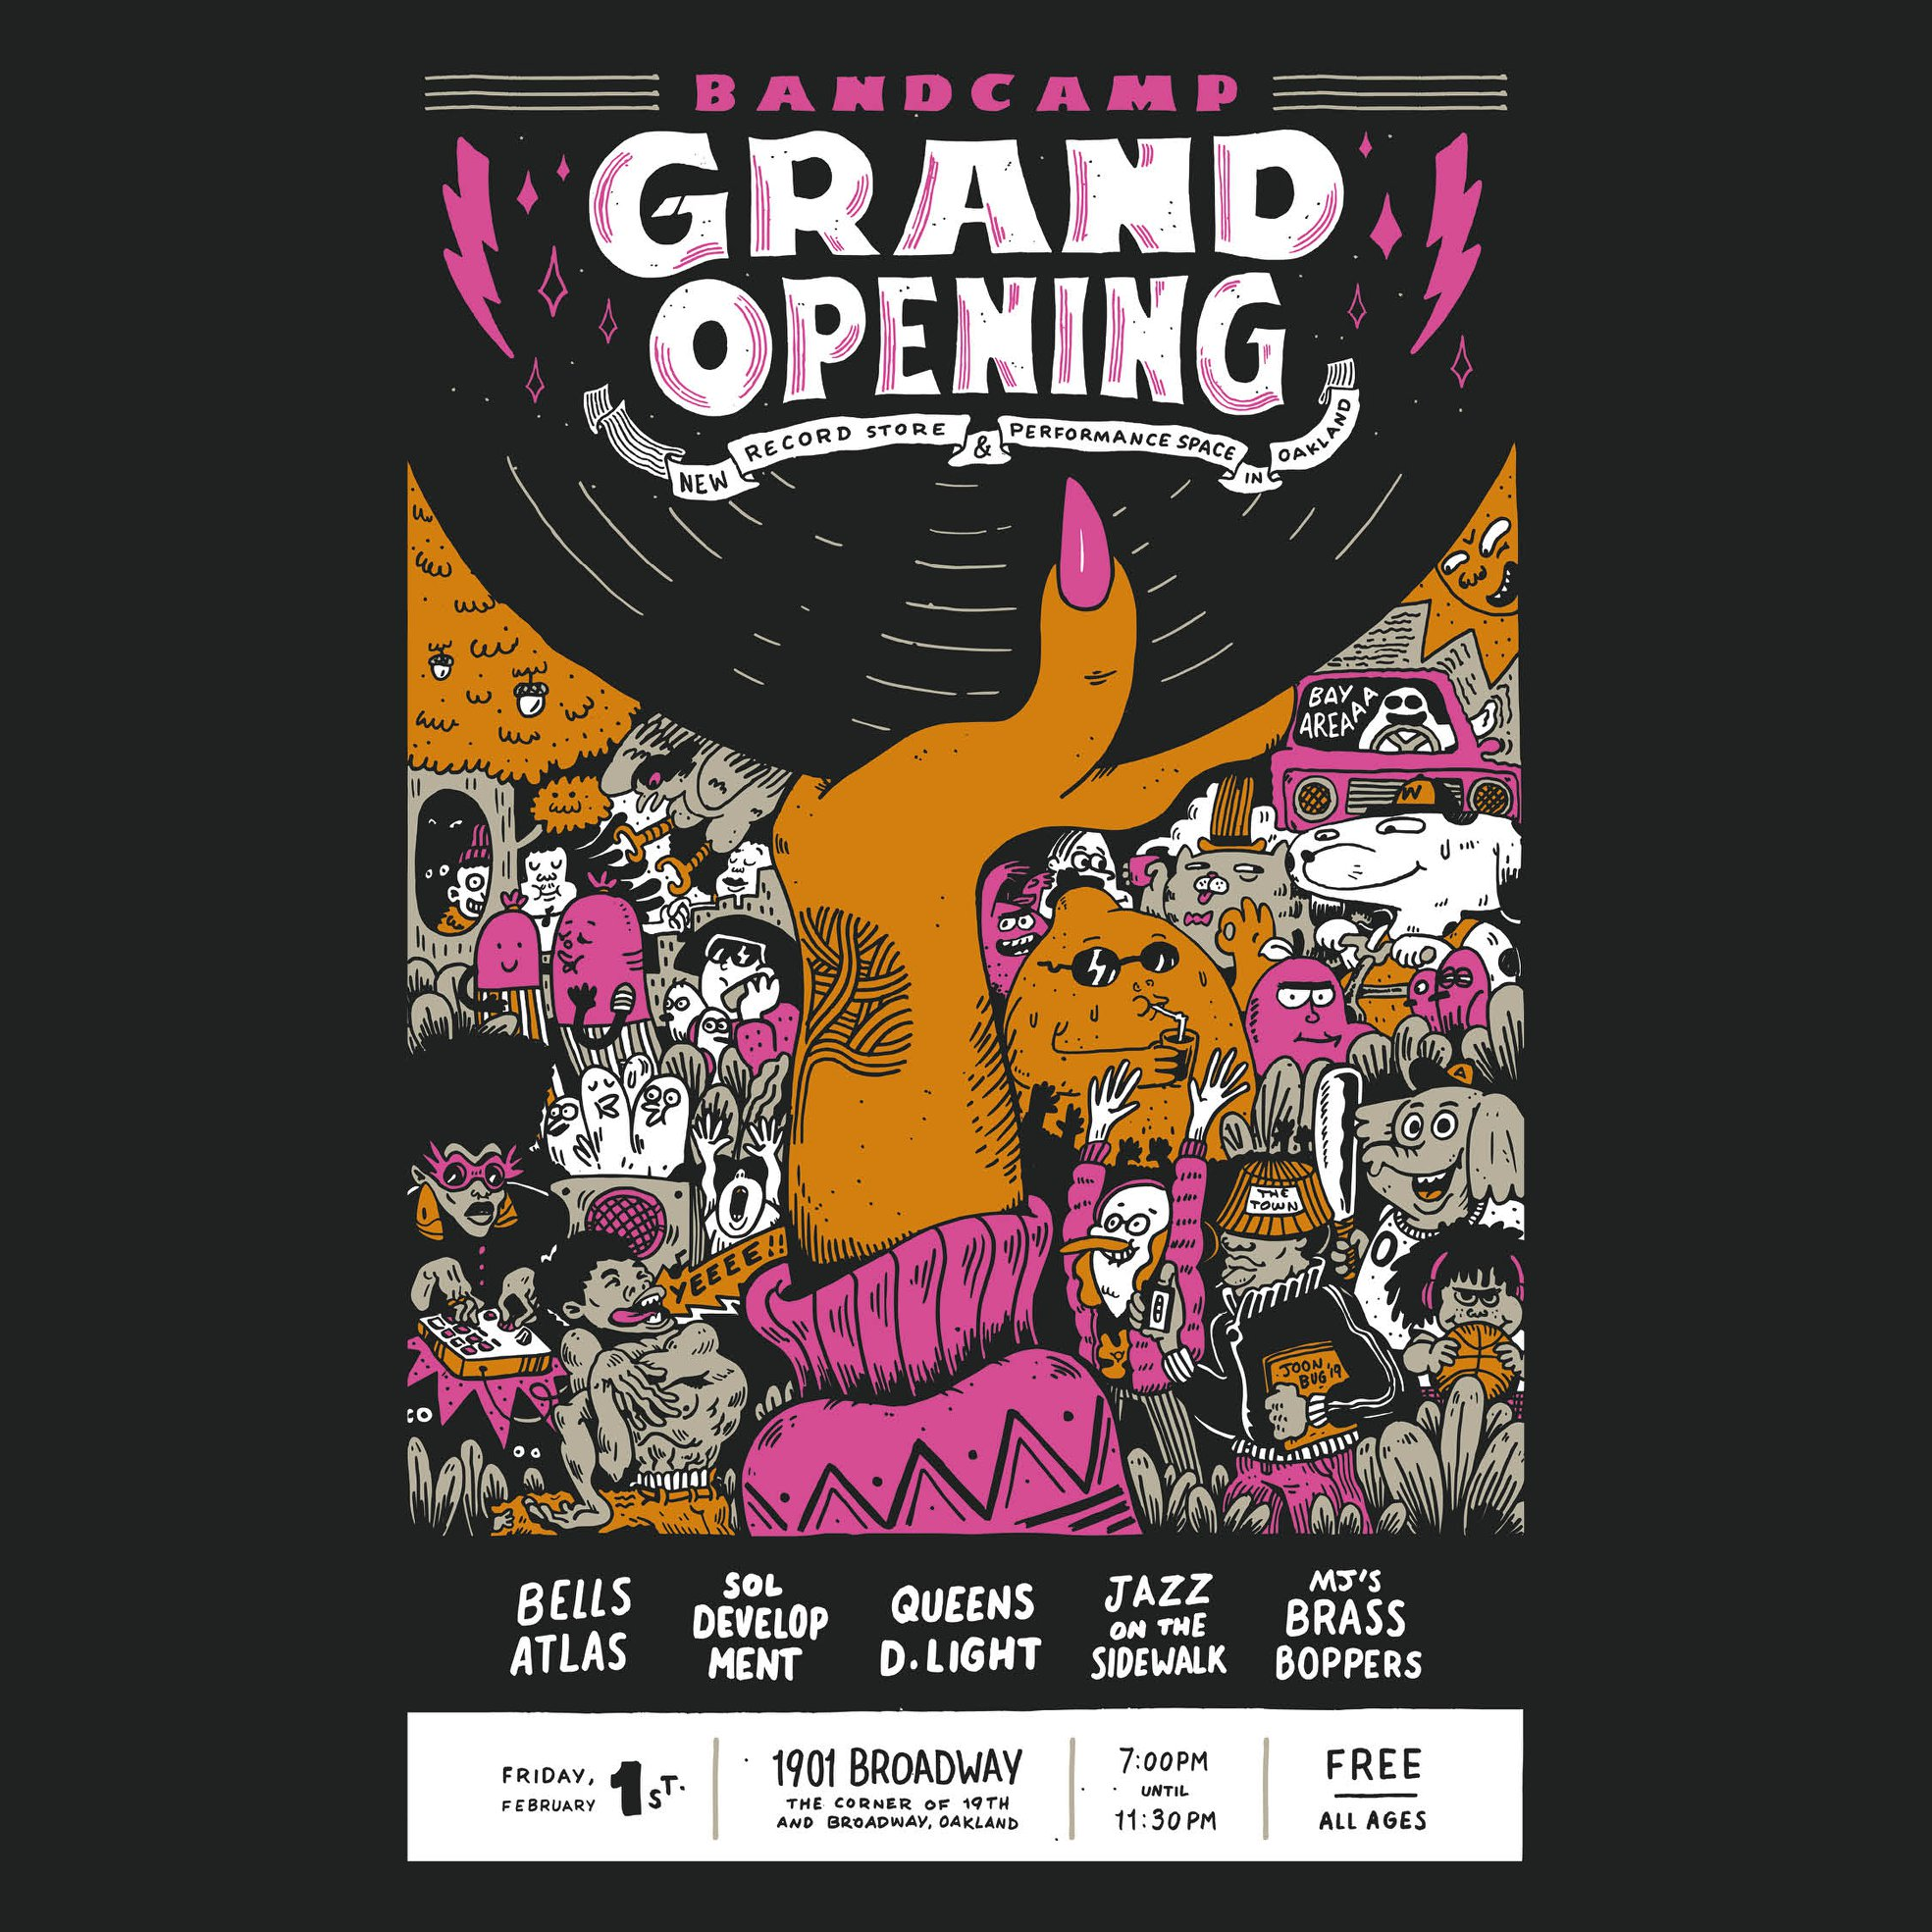 Bandcamp Grand Opening